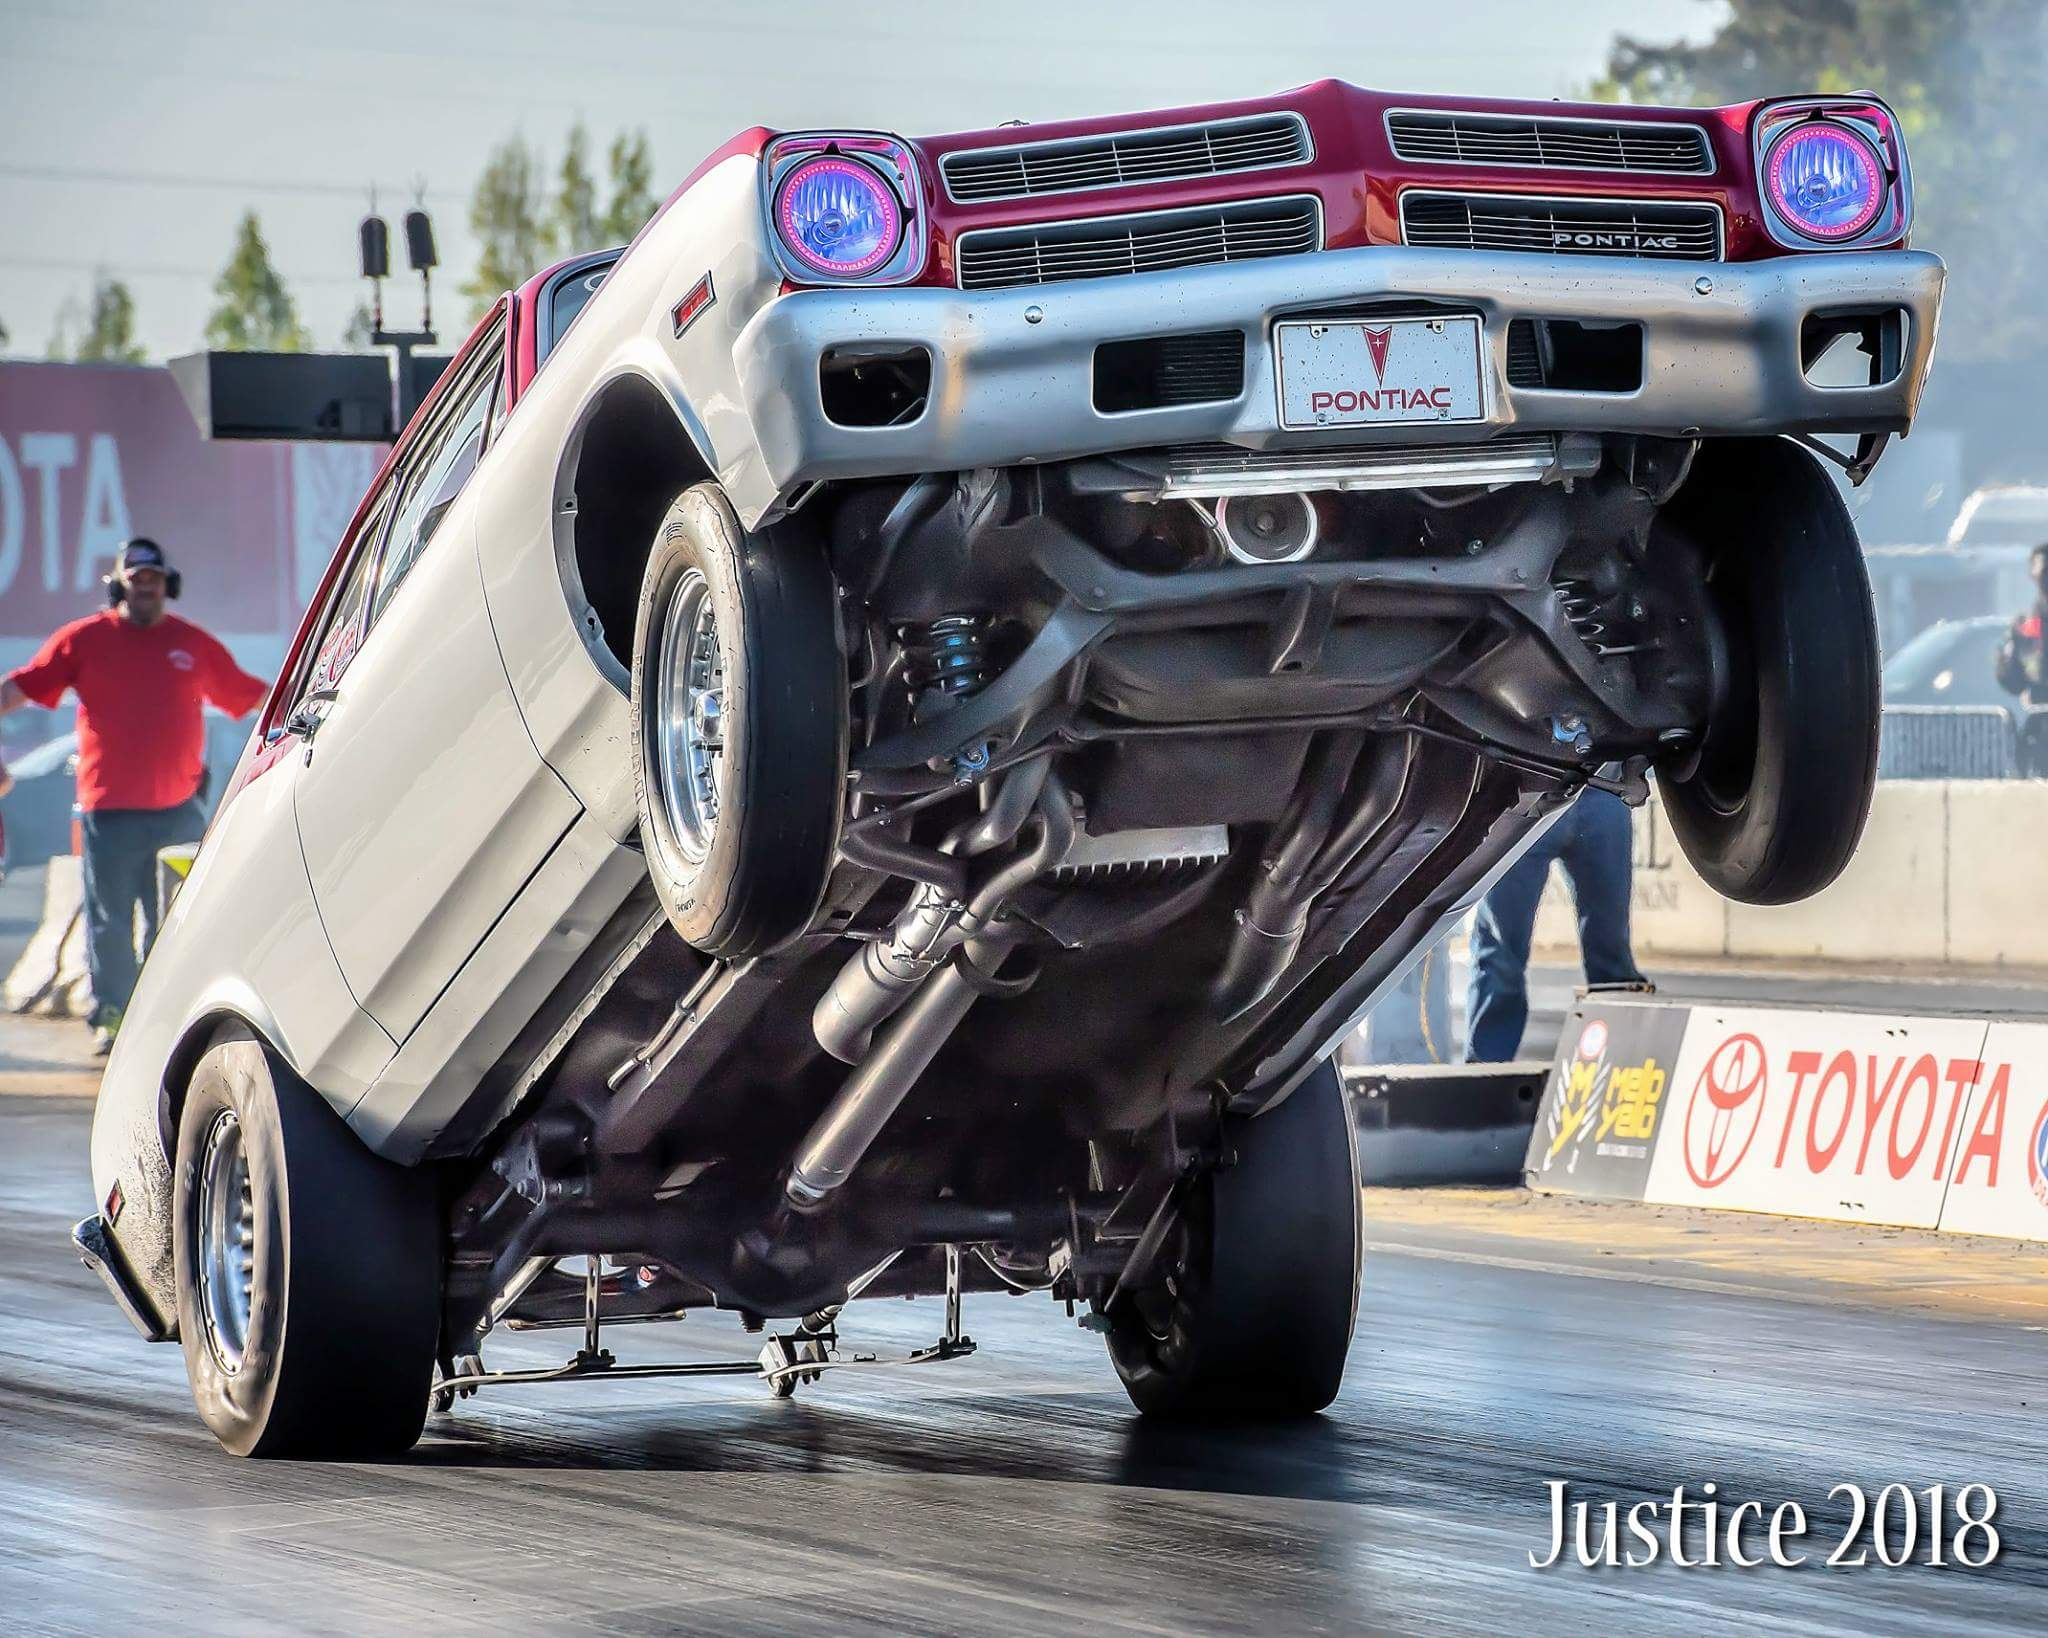 a 192 pontiac ventura doing a wheel stand on a racetrack